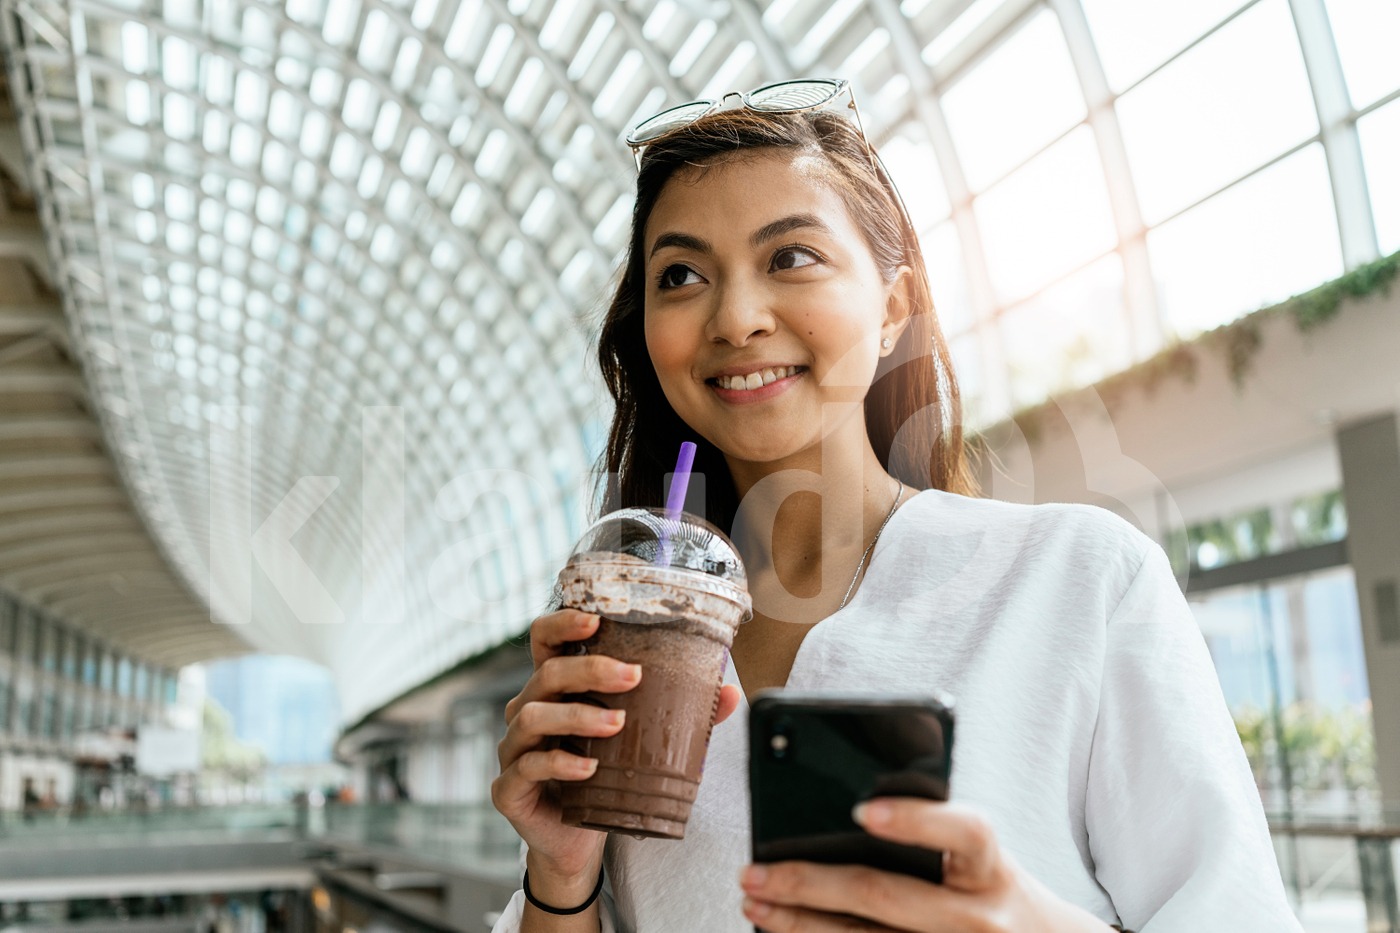 Asian woman using smartphone while drinking a coffee